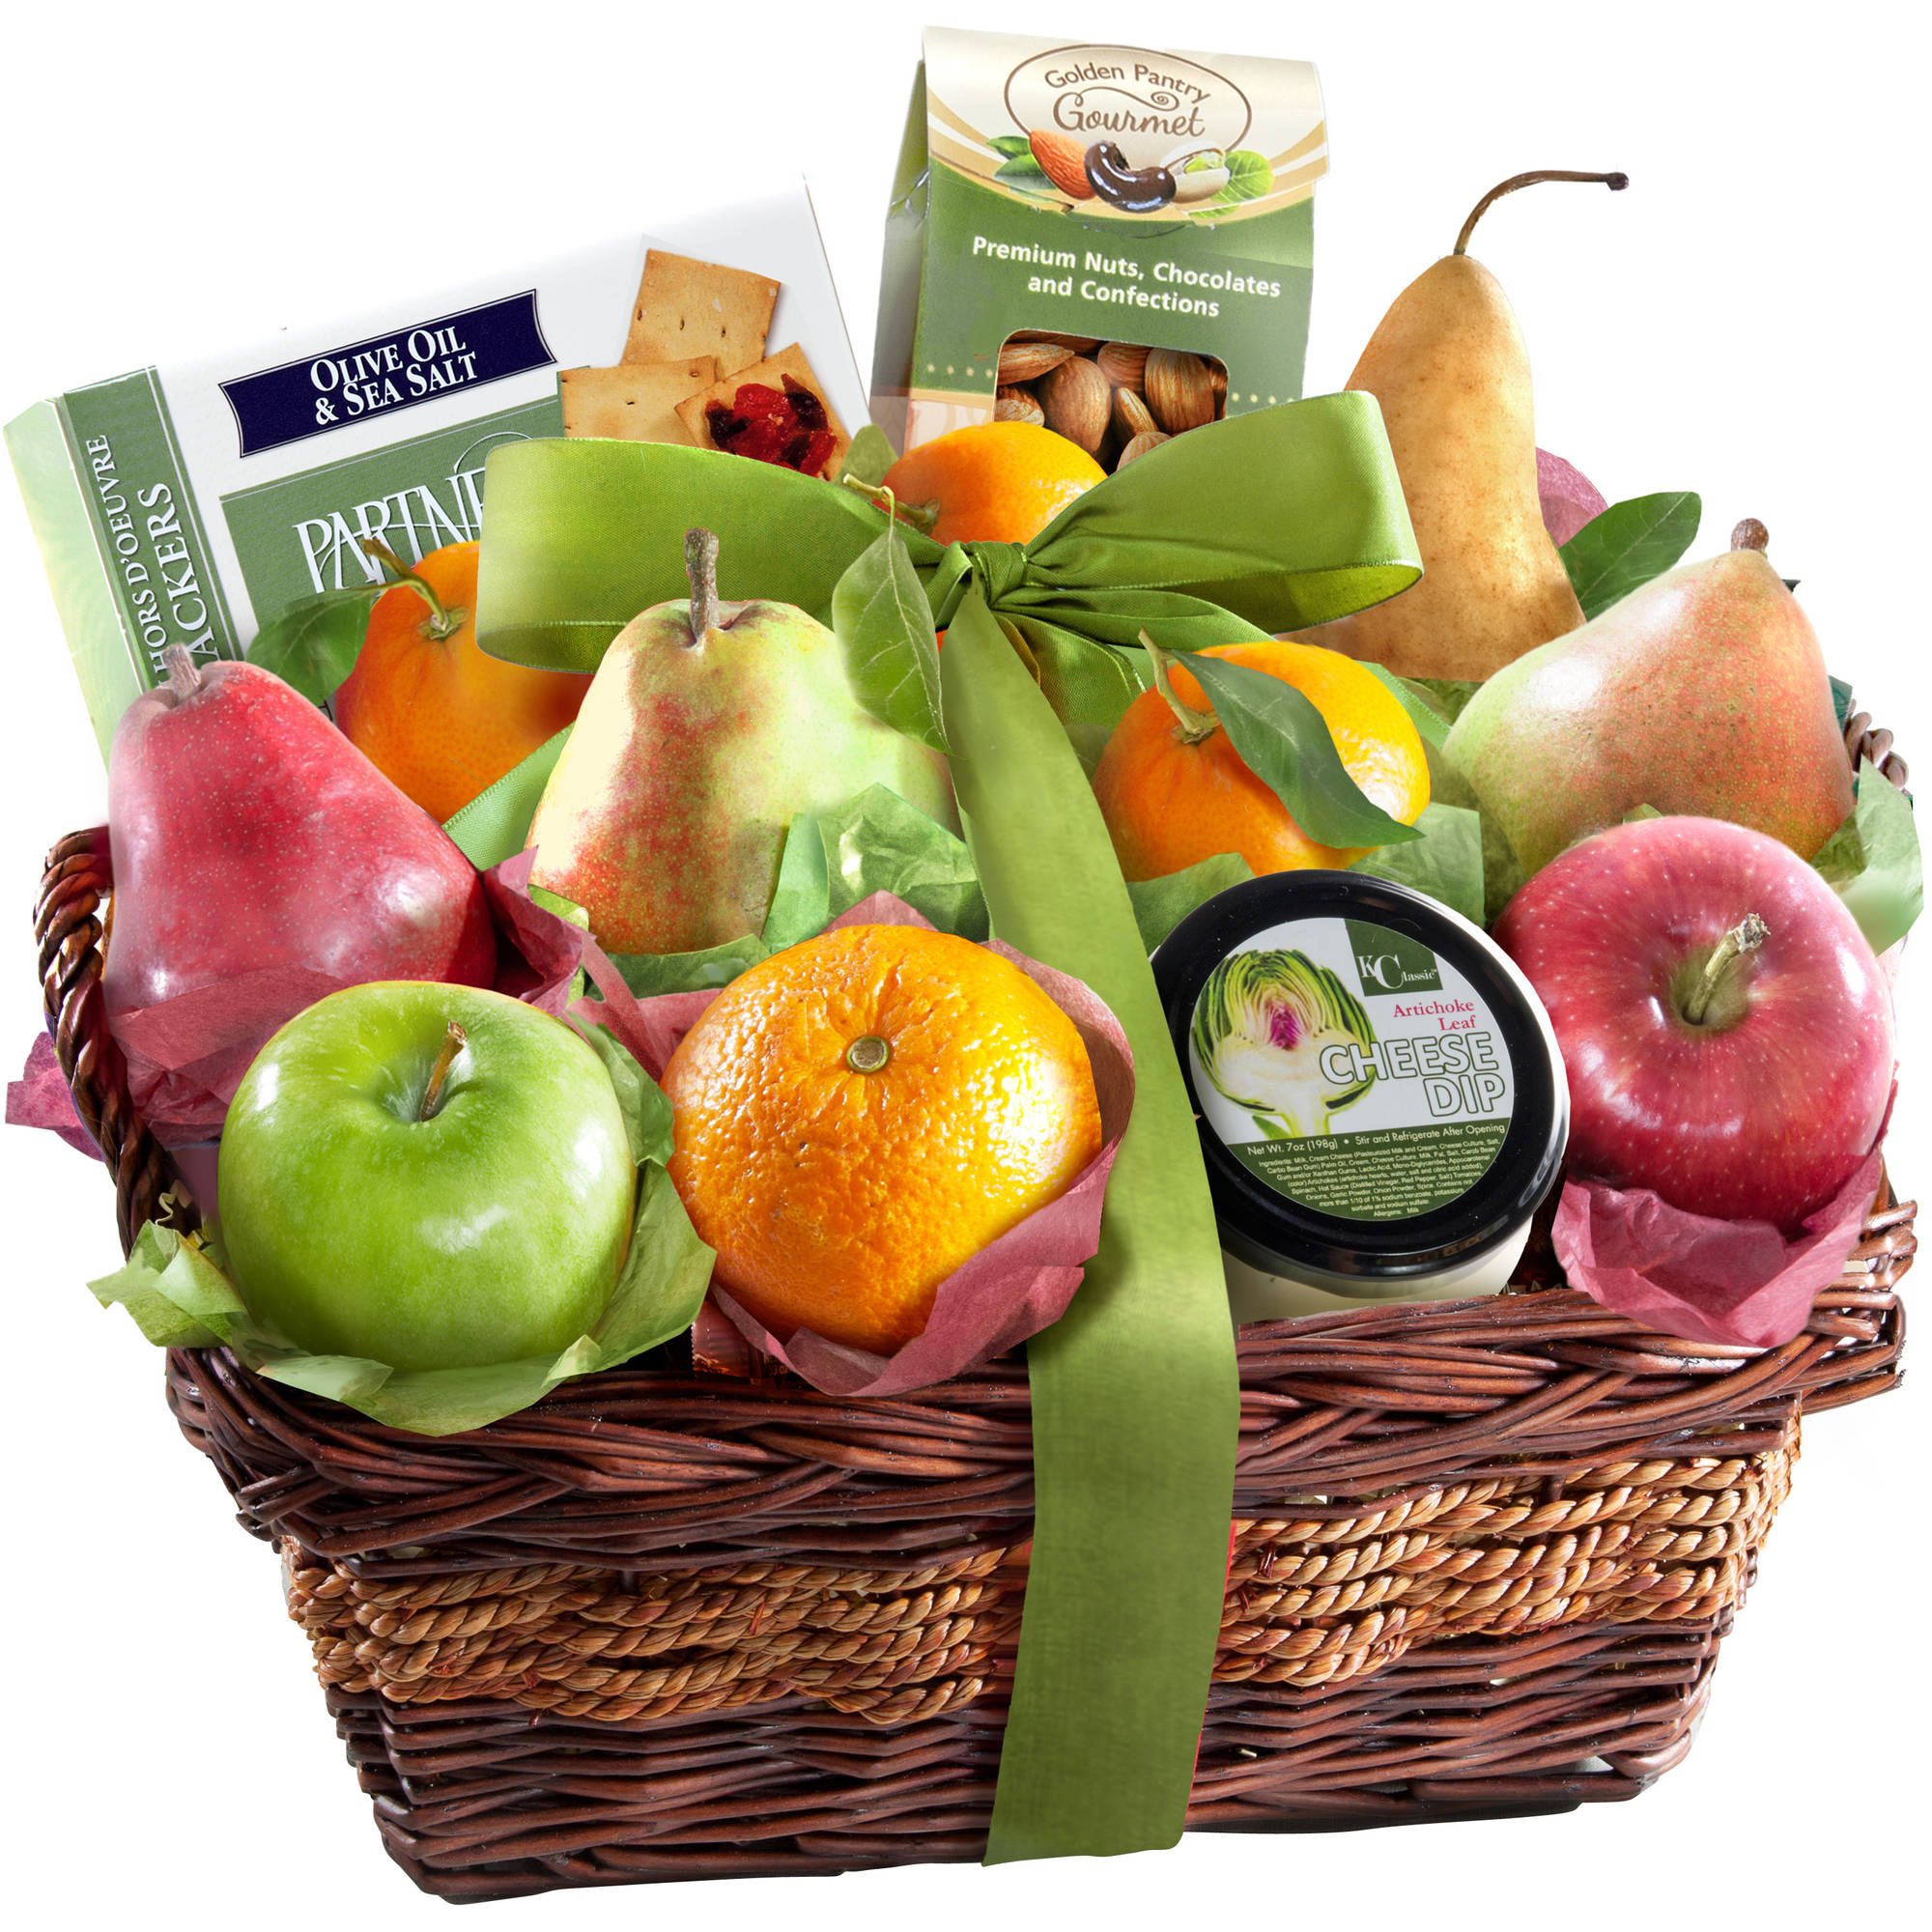 Golden State Fruit Cheese and Nuts Delight Fruit Basket, 14 pc